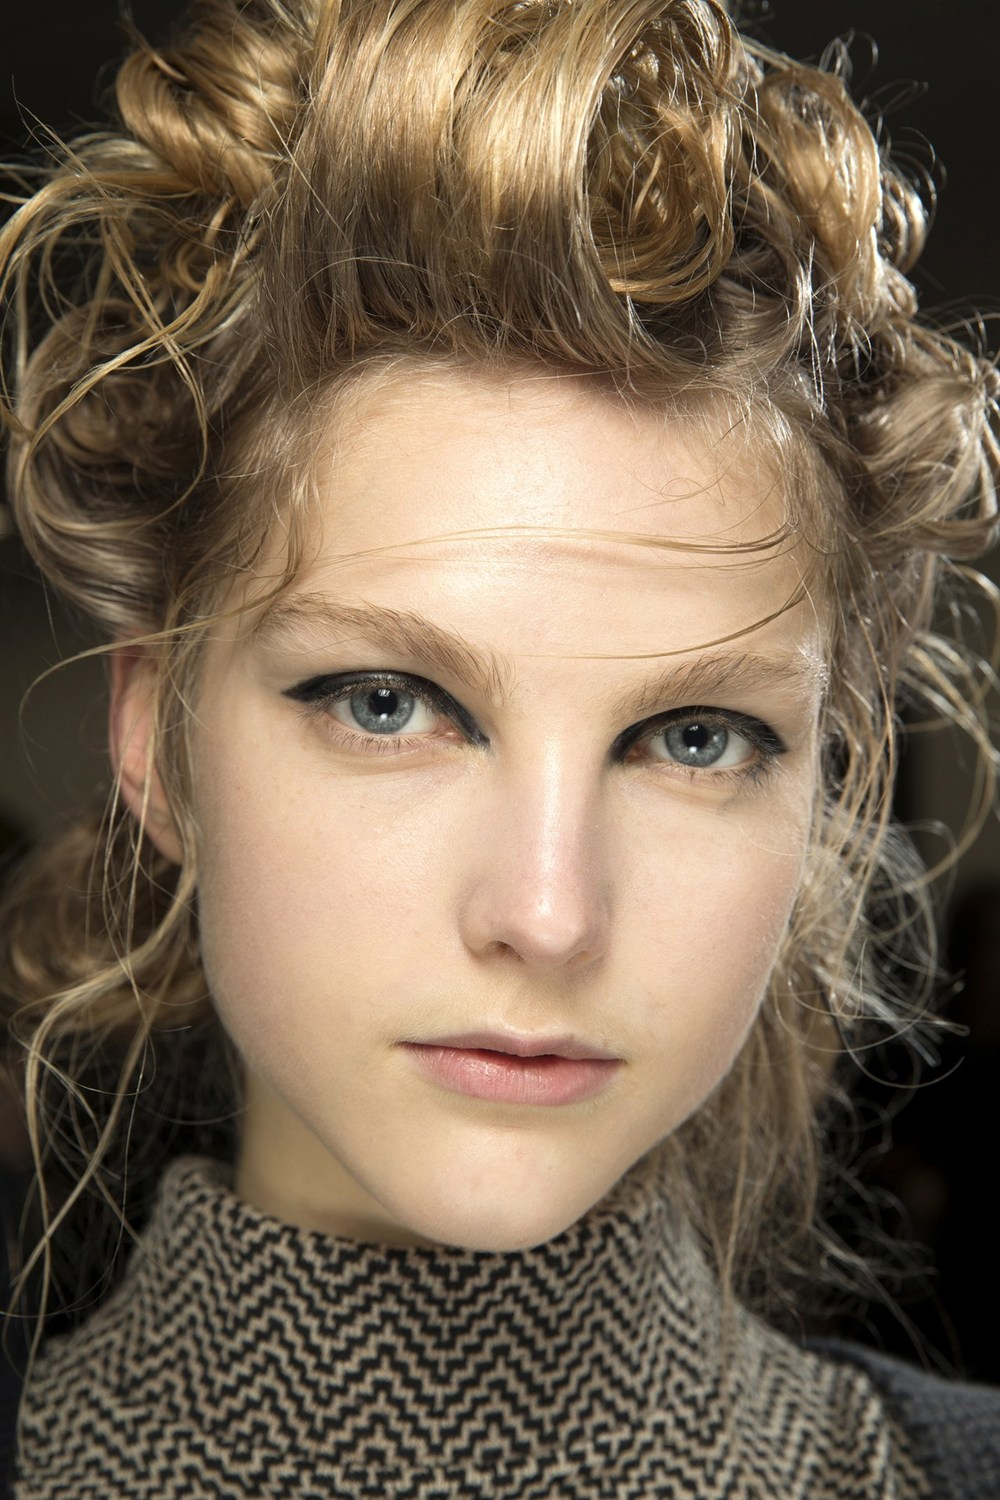 Simone Rocha - James Pecis styled the hair in piled-up up-dos with a wet-look finish.